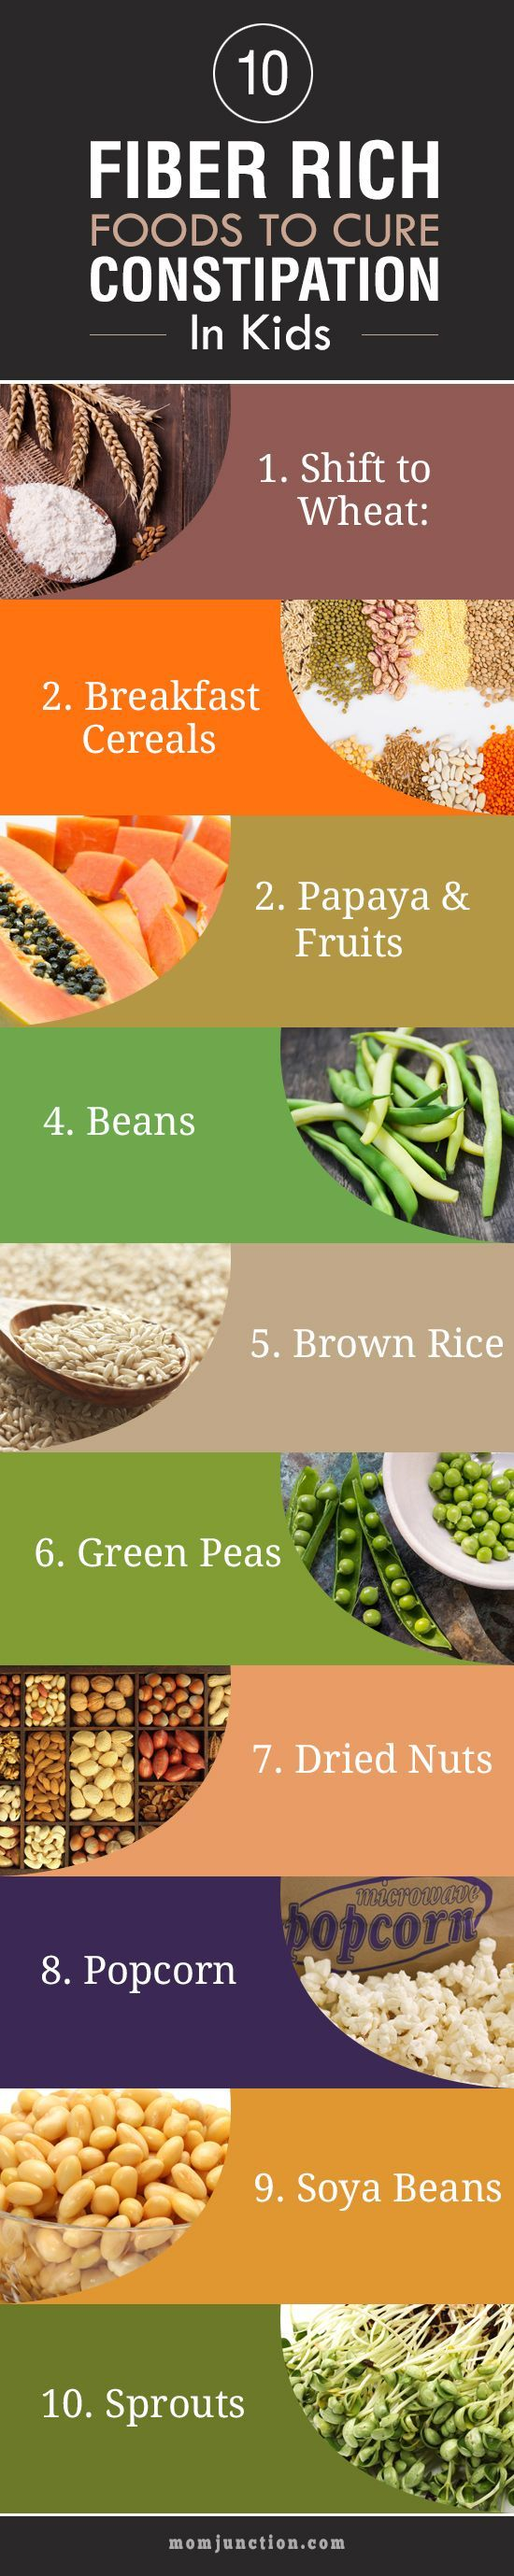 Fiber Rich Foods To Cure Constipation In Your Kids: Here are our ten best suggestions to include fiber rich foods for kids constipation in their daily diet! #Health